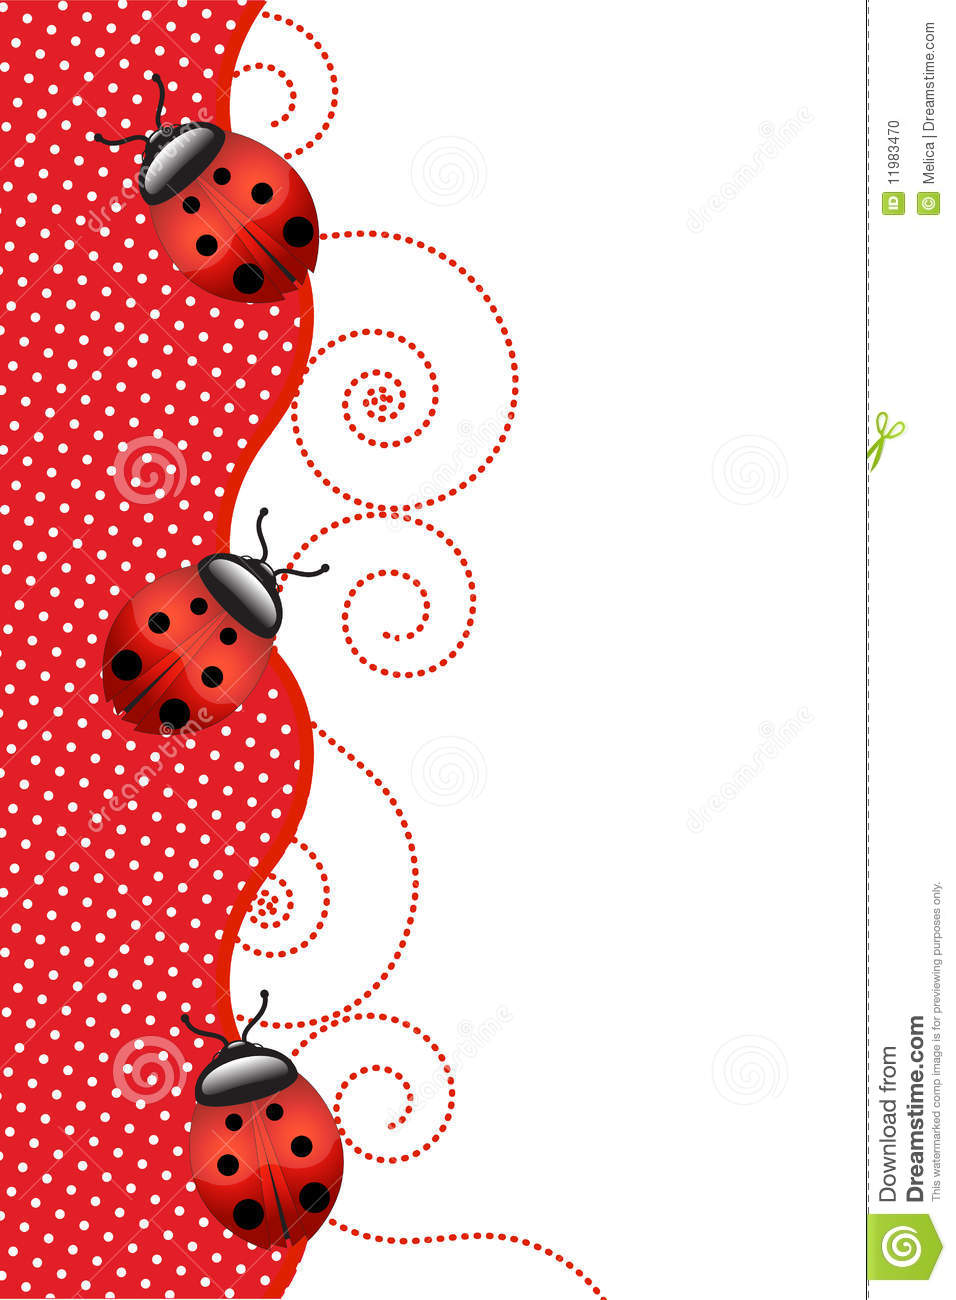 Happy Easter Wallpaper 3d Ladybugs Stock Photo Image 11983470